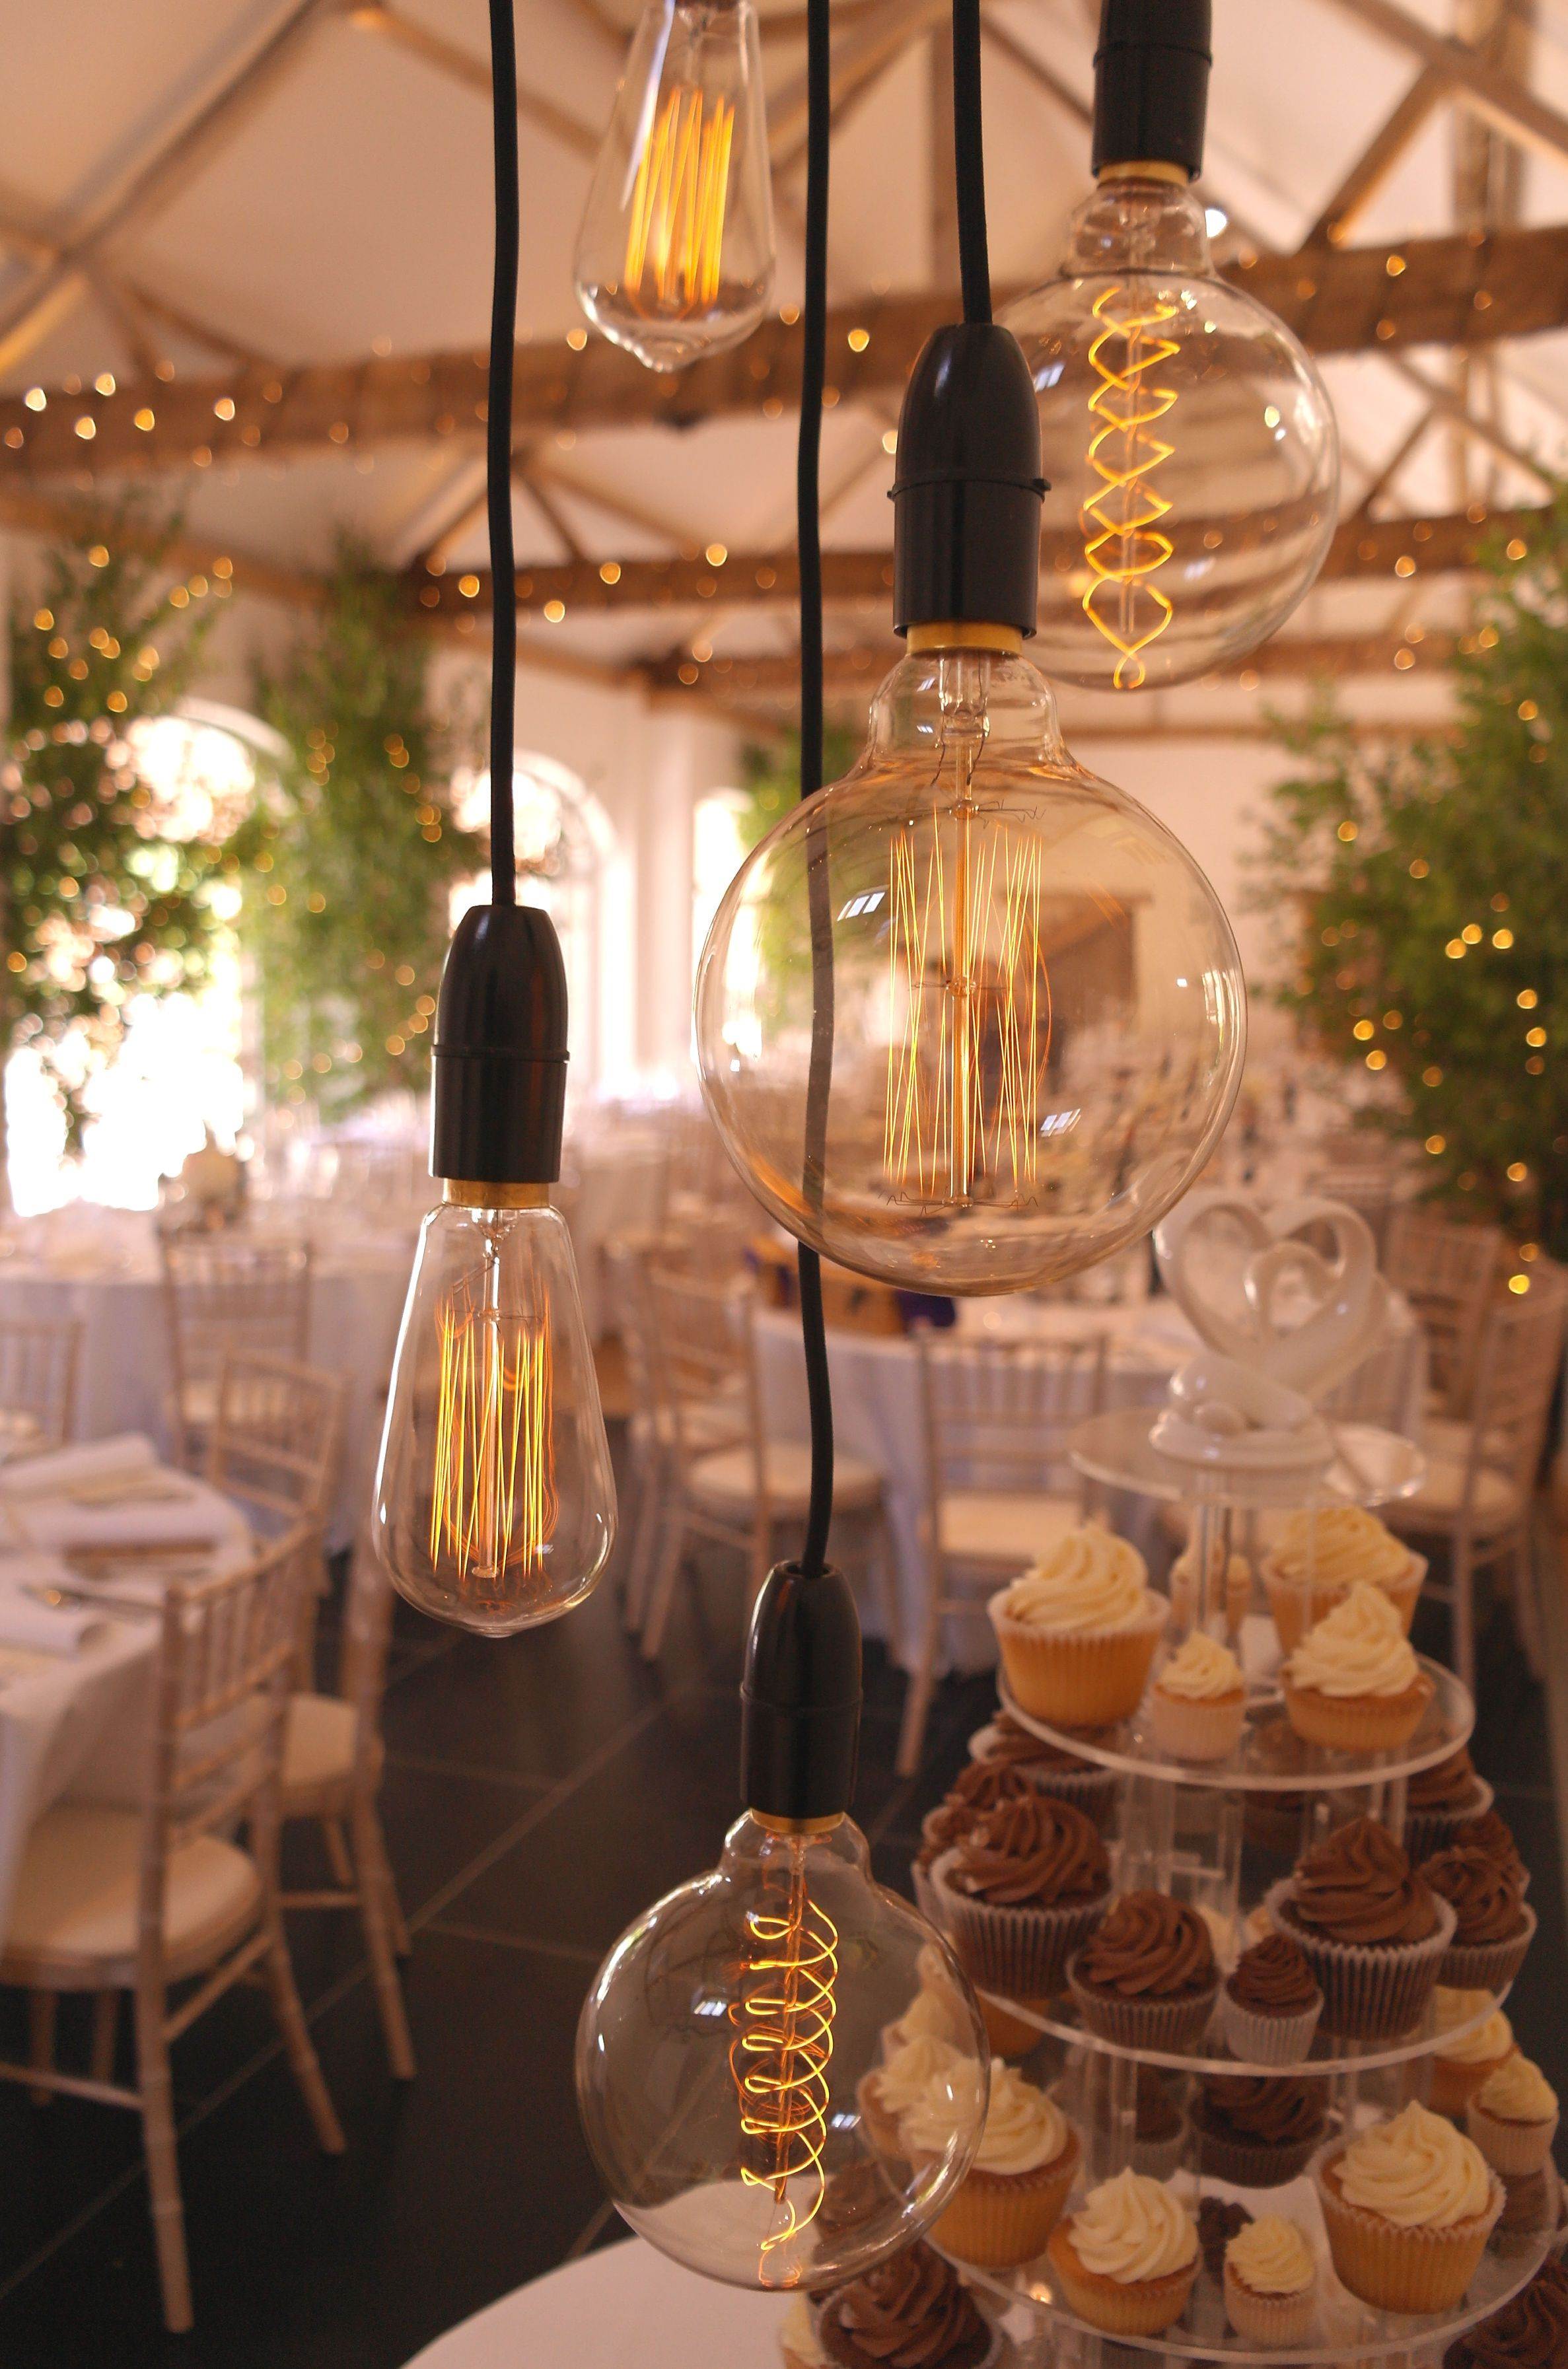 Our filament festoon lights shown here at Dorney Court